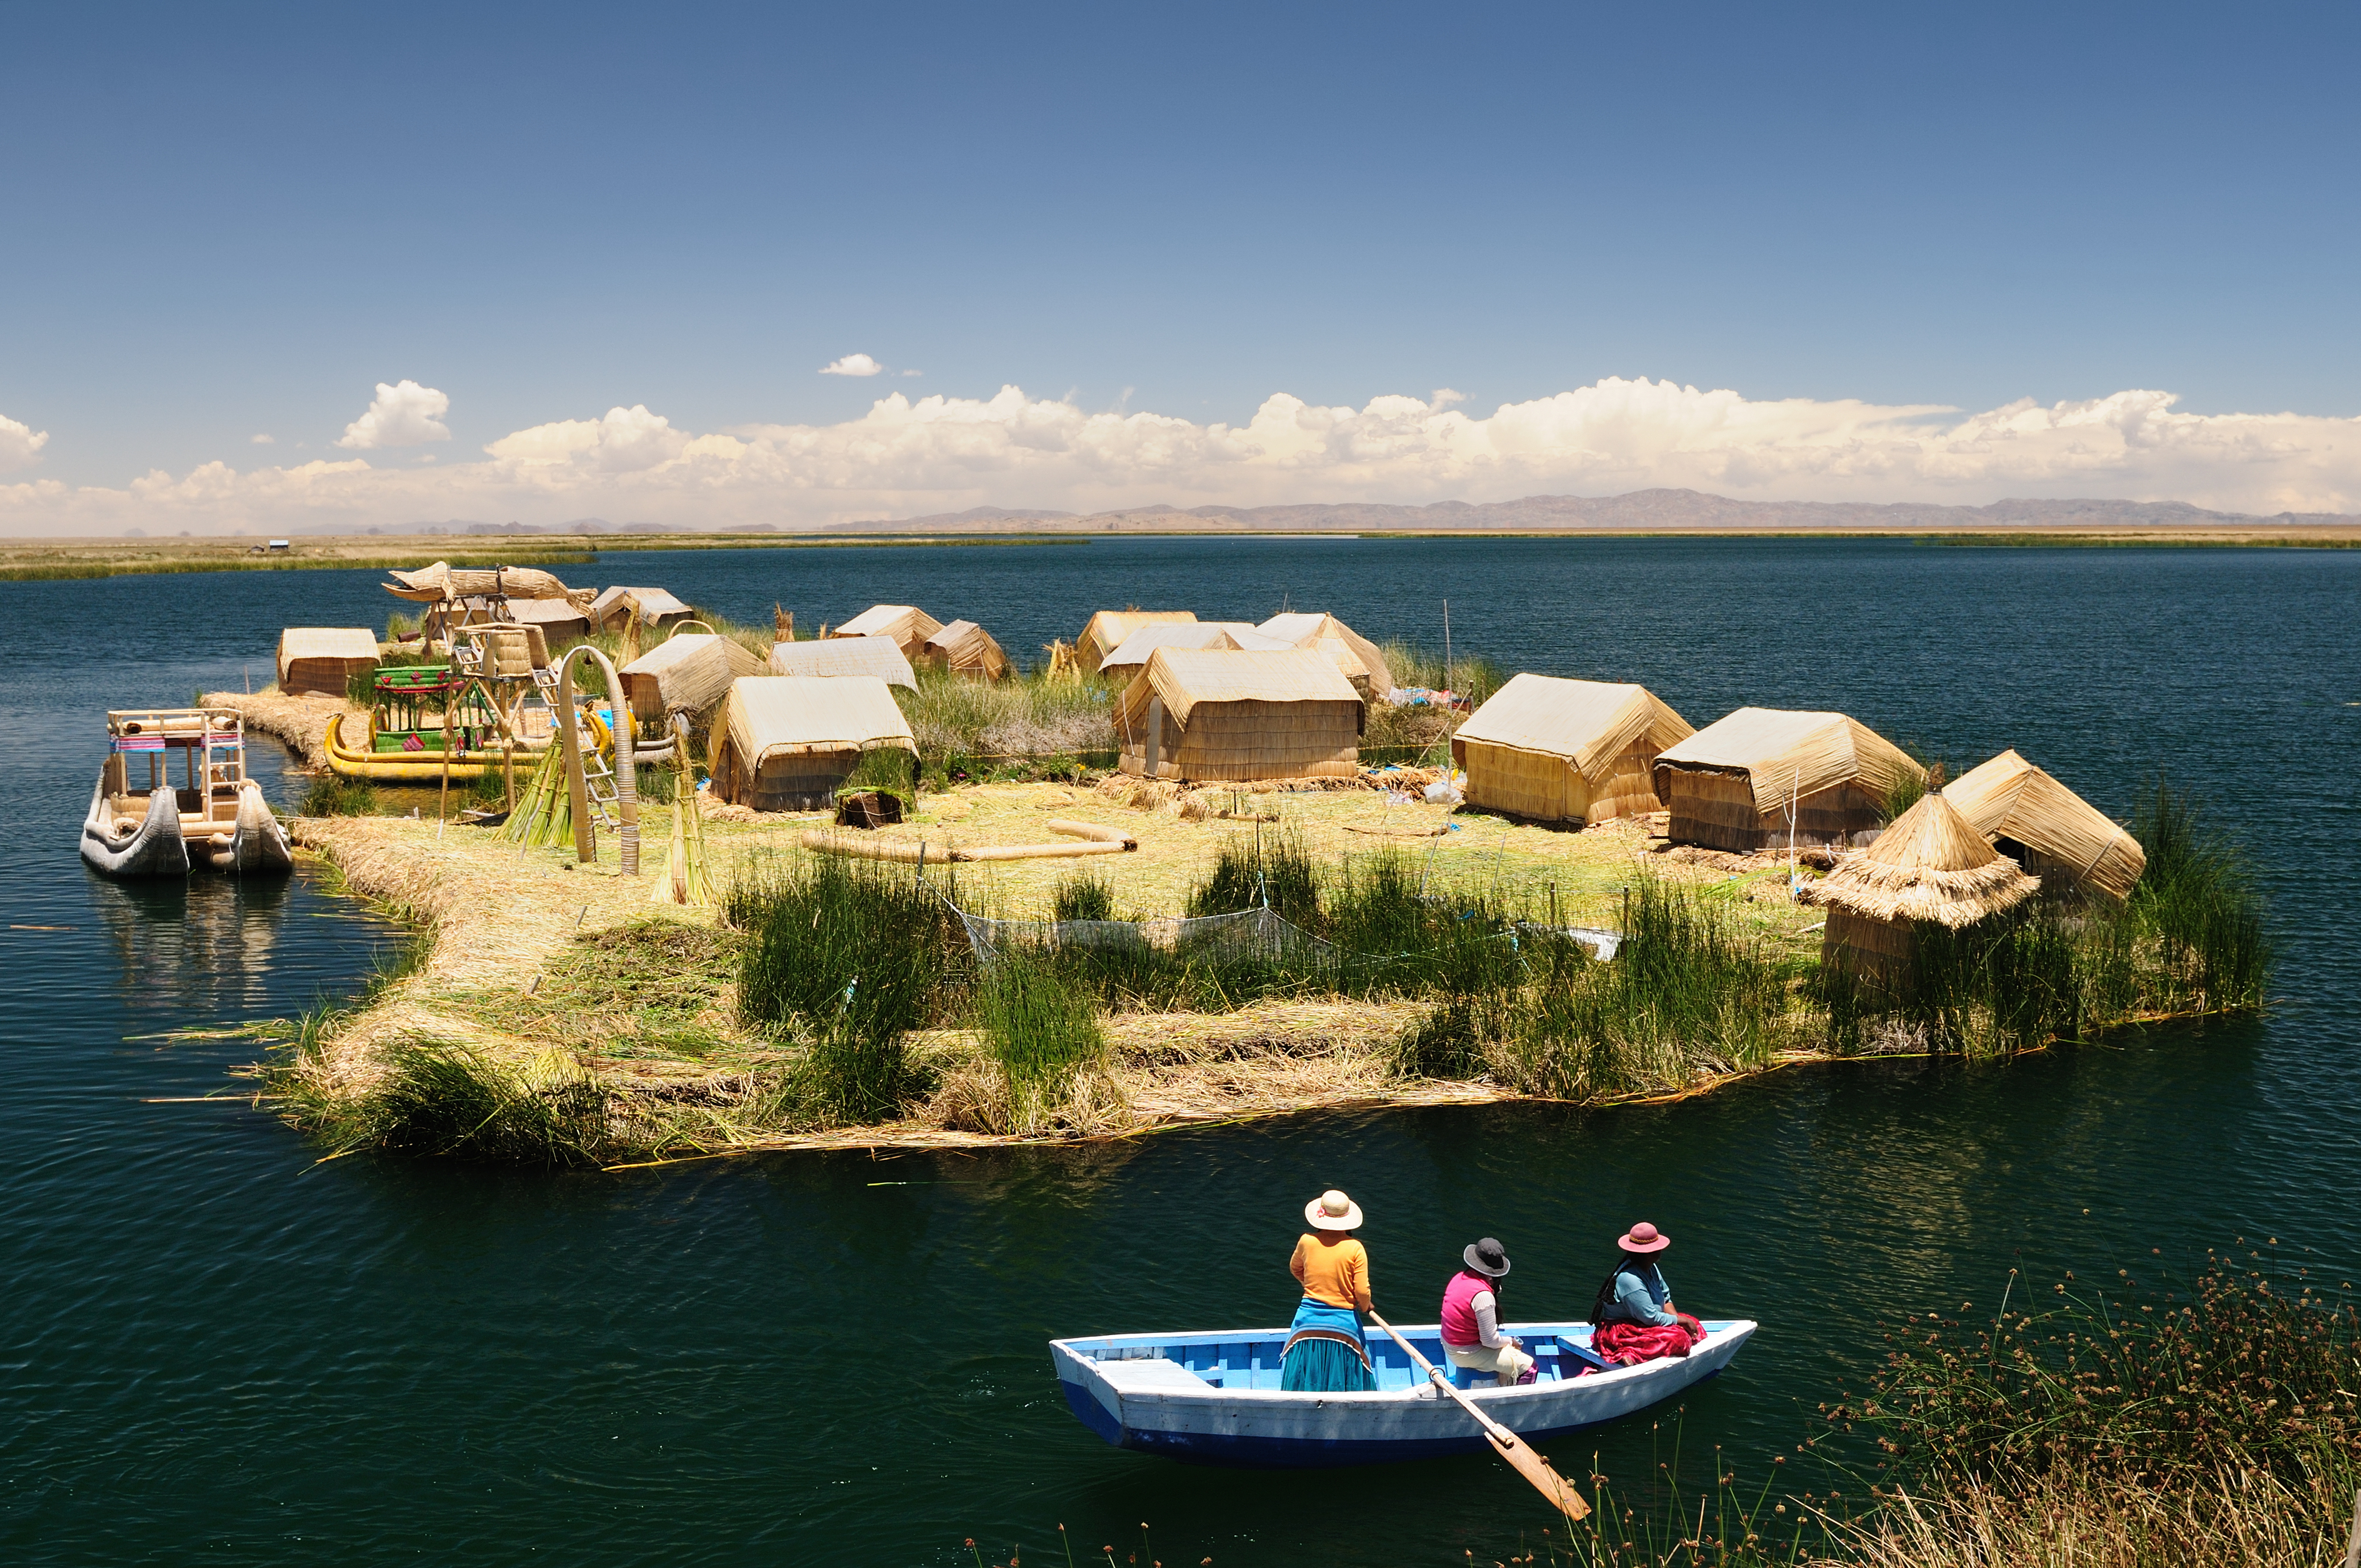 floating Uros islands on the Titicaca lake, the largest highaltitude lake in the world (3808m). Theyre built using the buoyant totora reeds_96802072